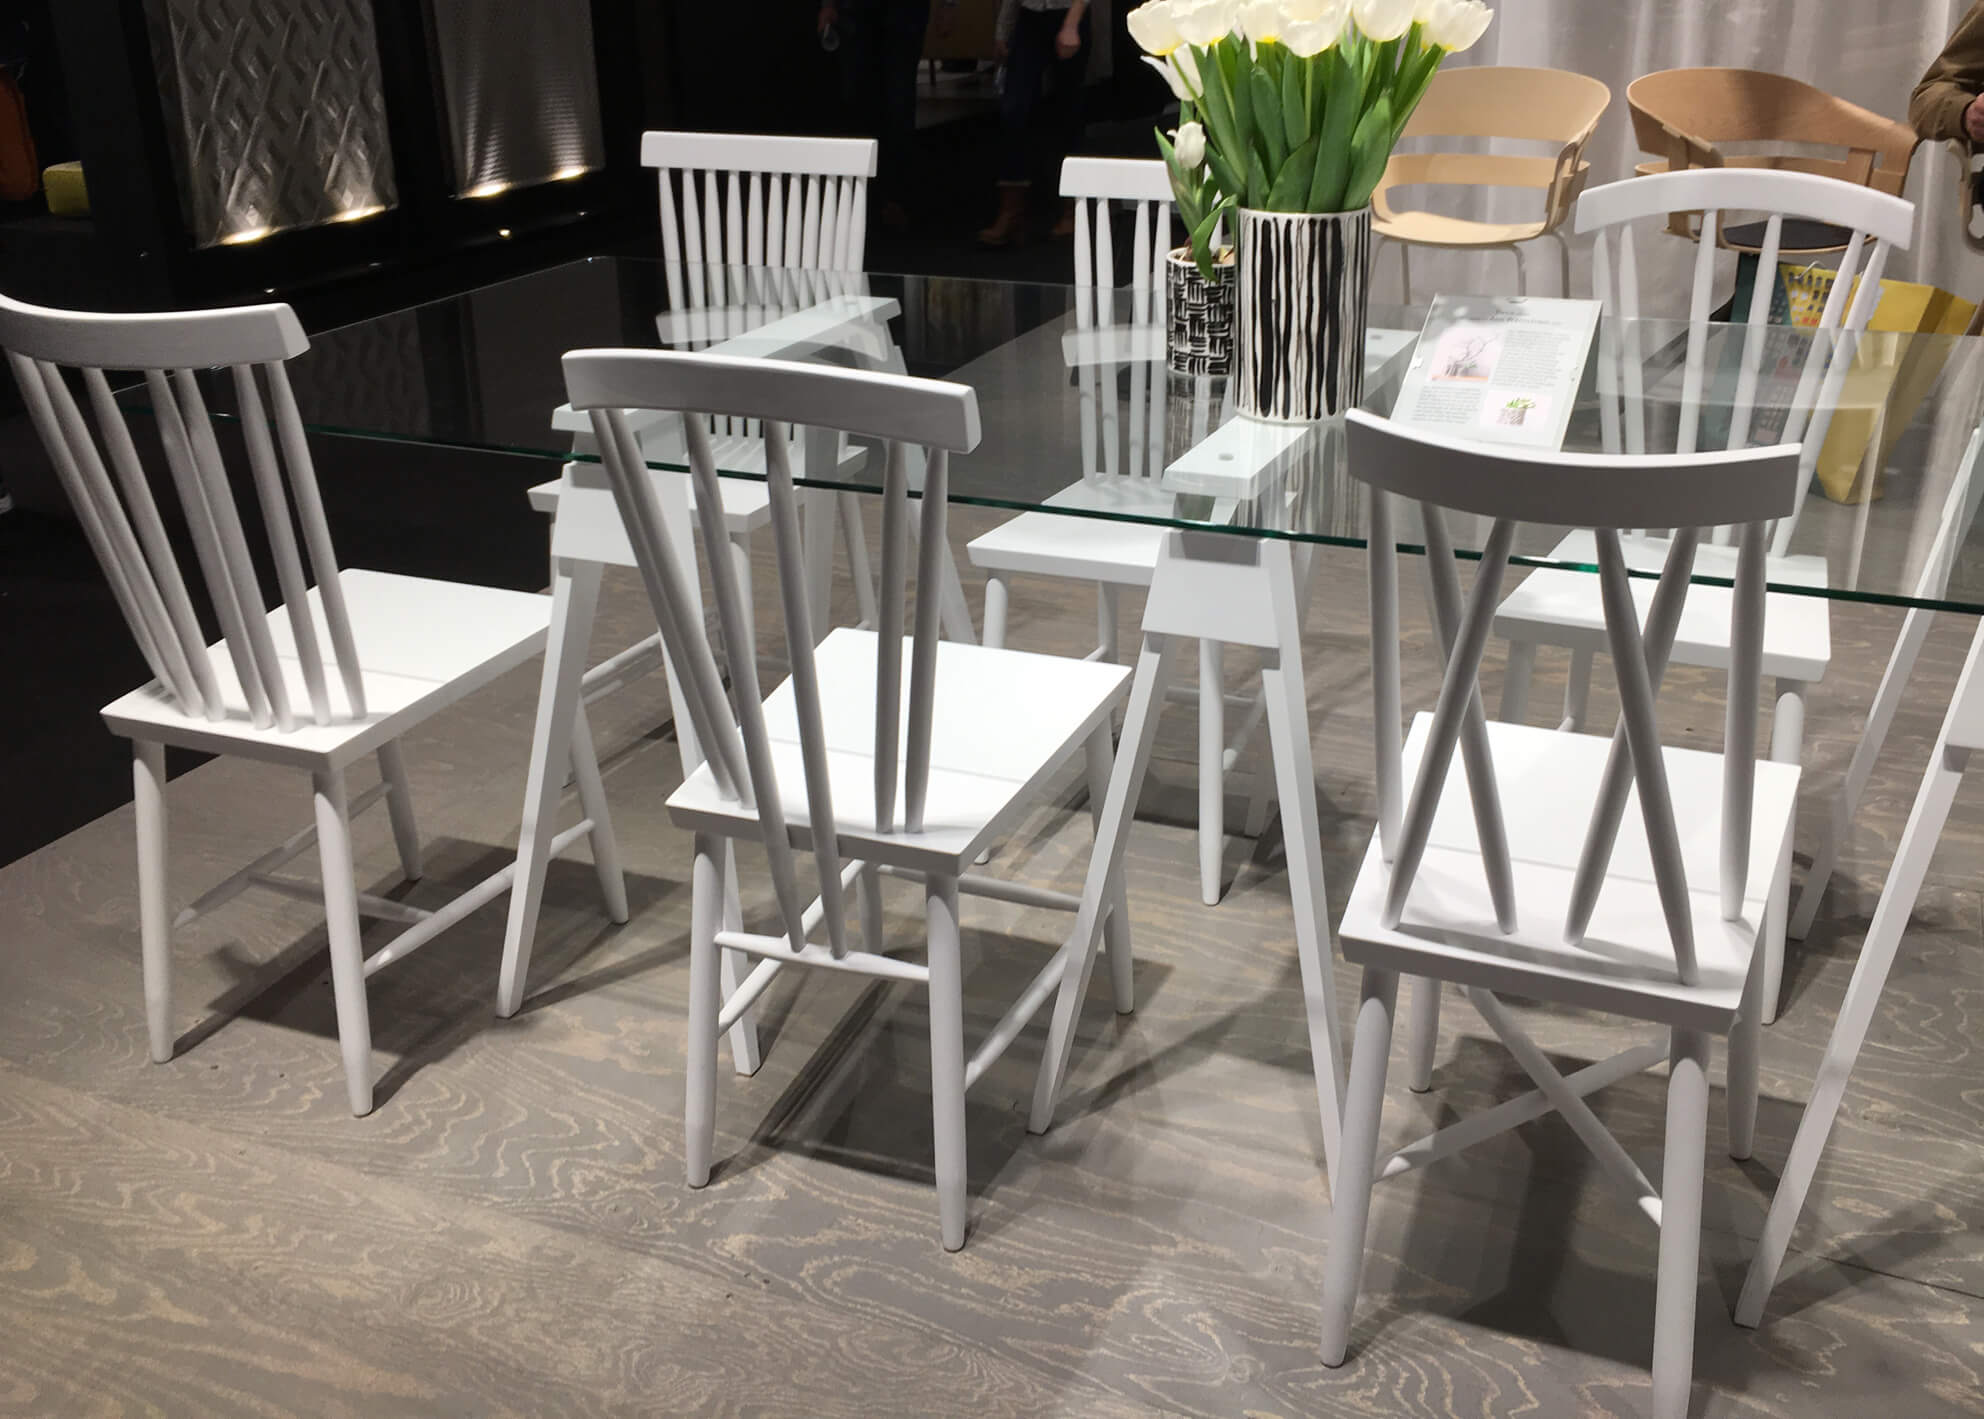 Family Chairs, Design House Stockholm